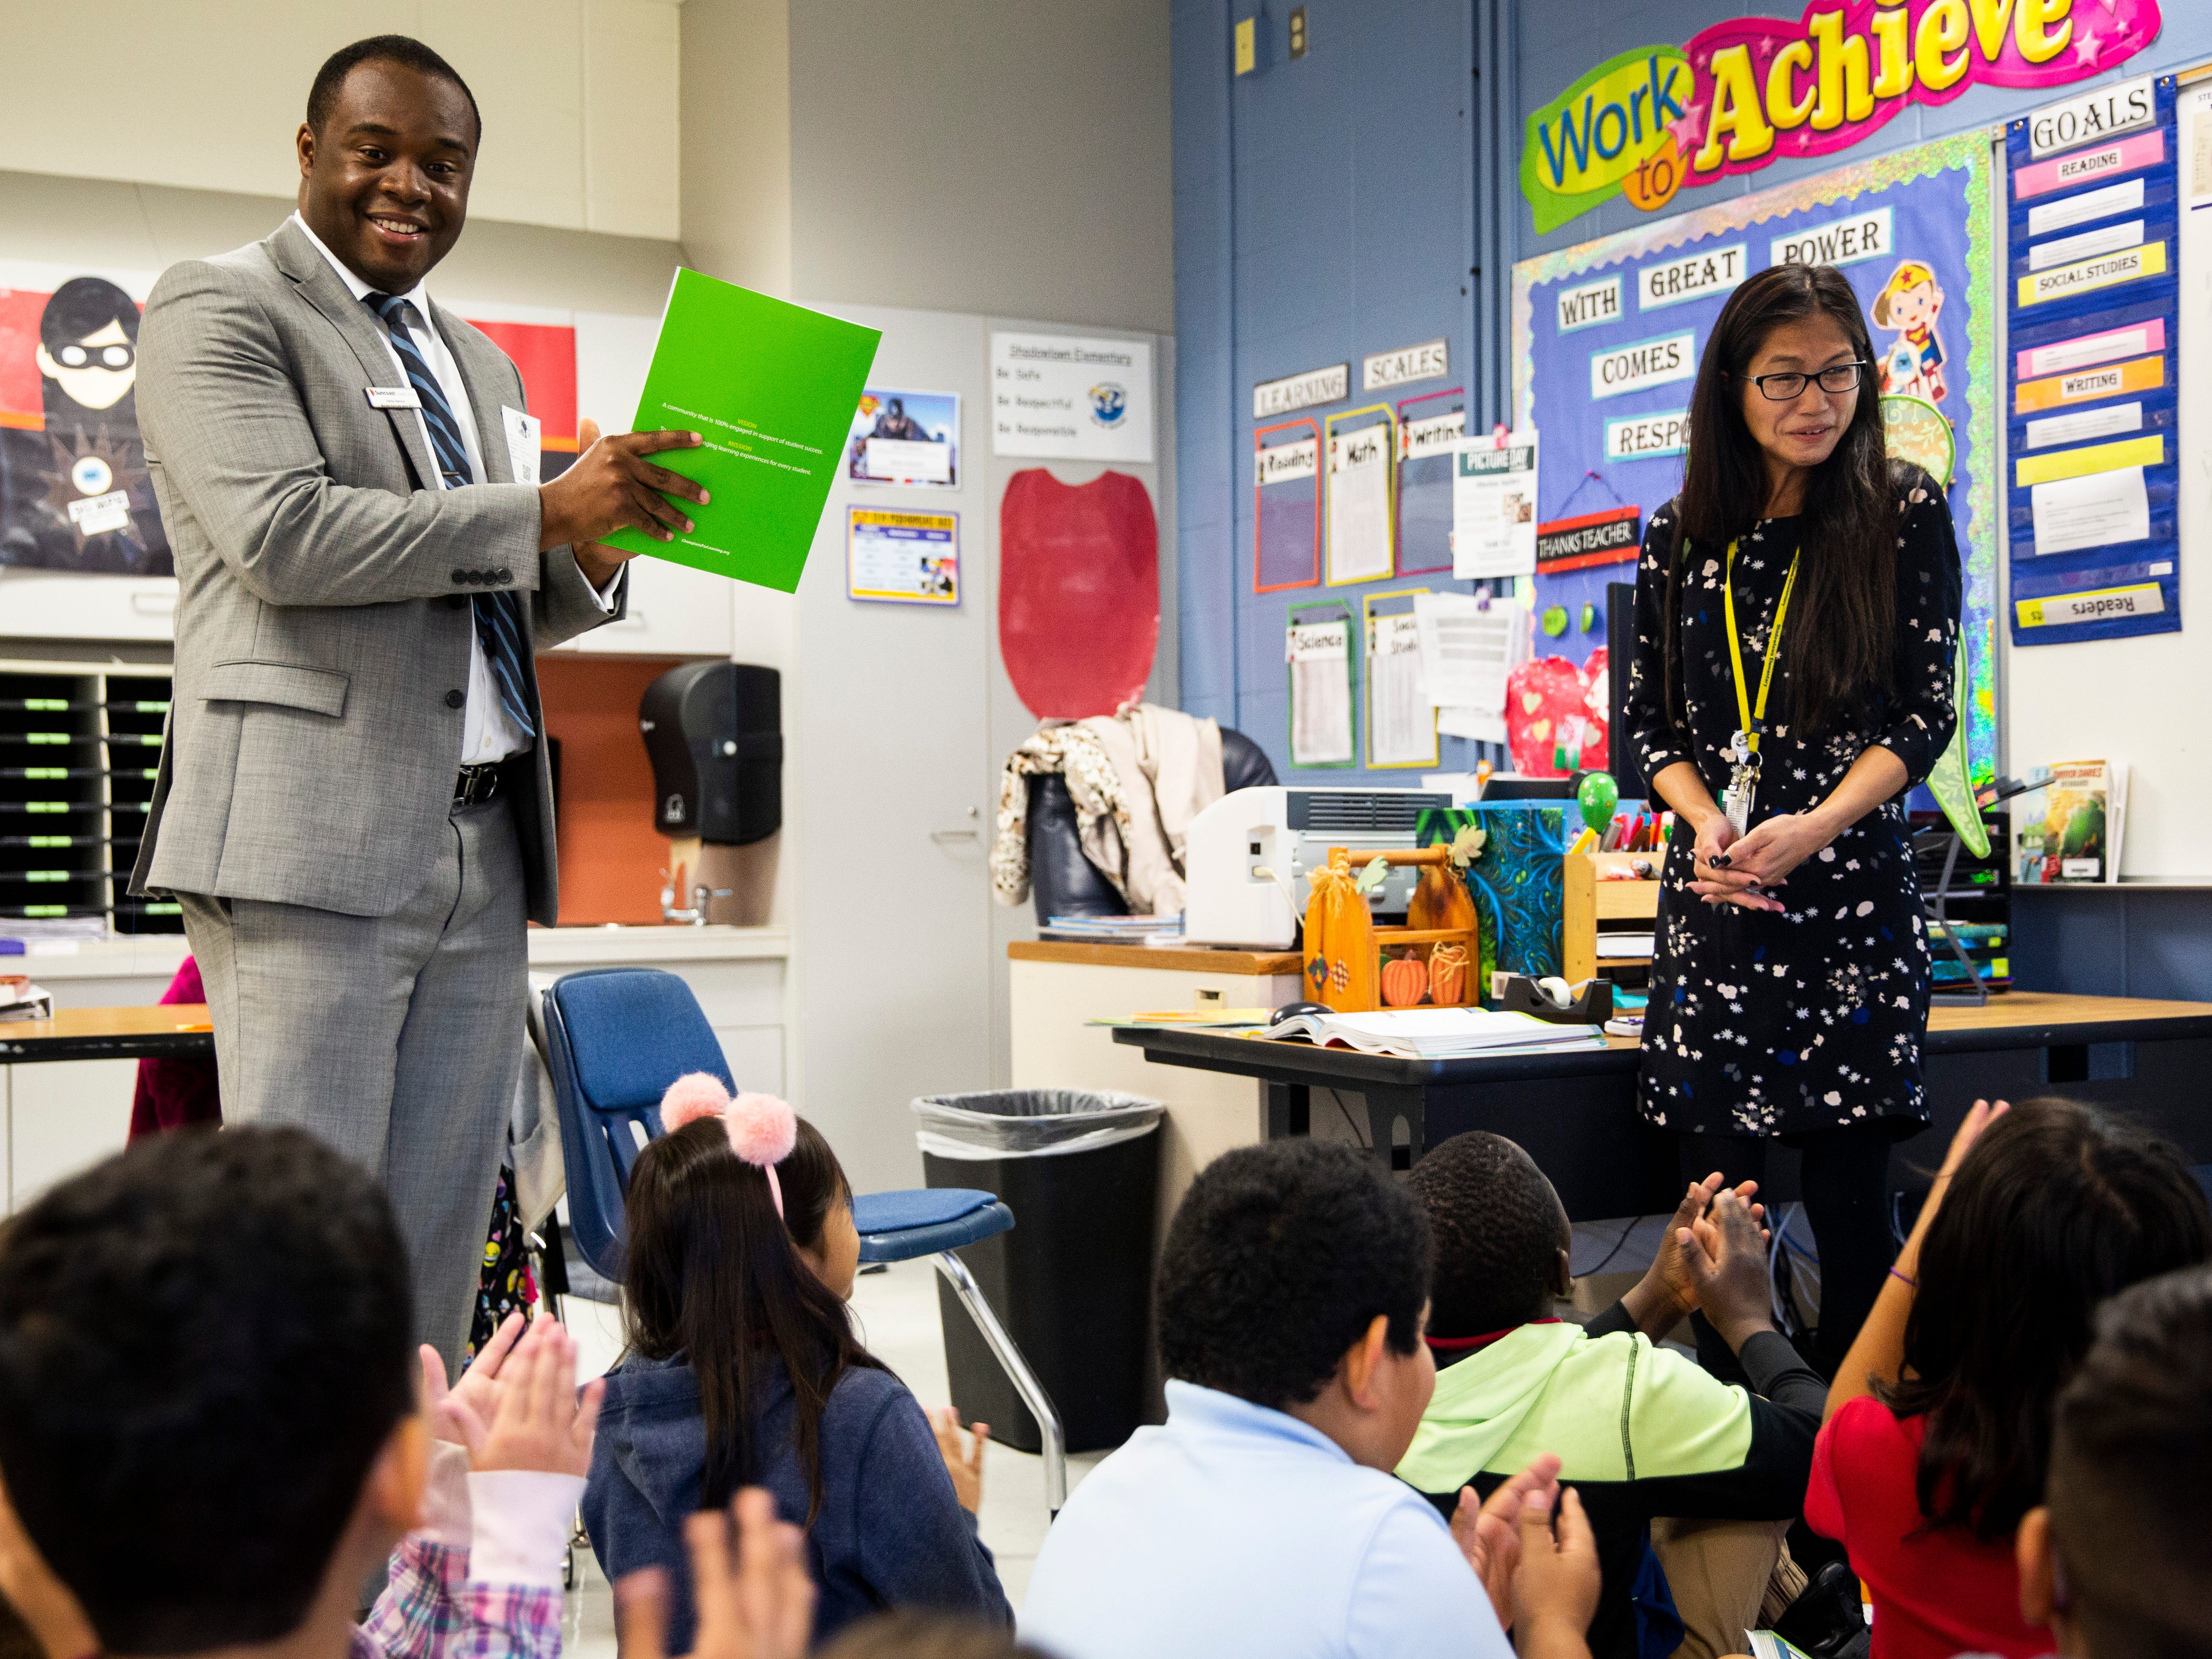 Herby Berson presents a Teachers of Distinction certificate from Champions For Learning to Phuong Gano on Tuesday, Oct. 30, 2018, at Shadowlawn Elementary School in East Naples.